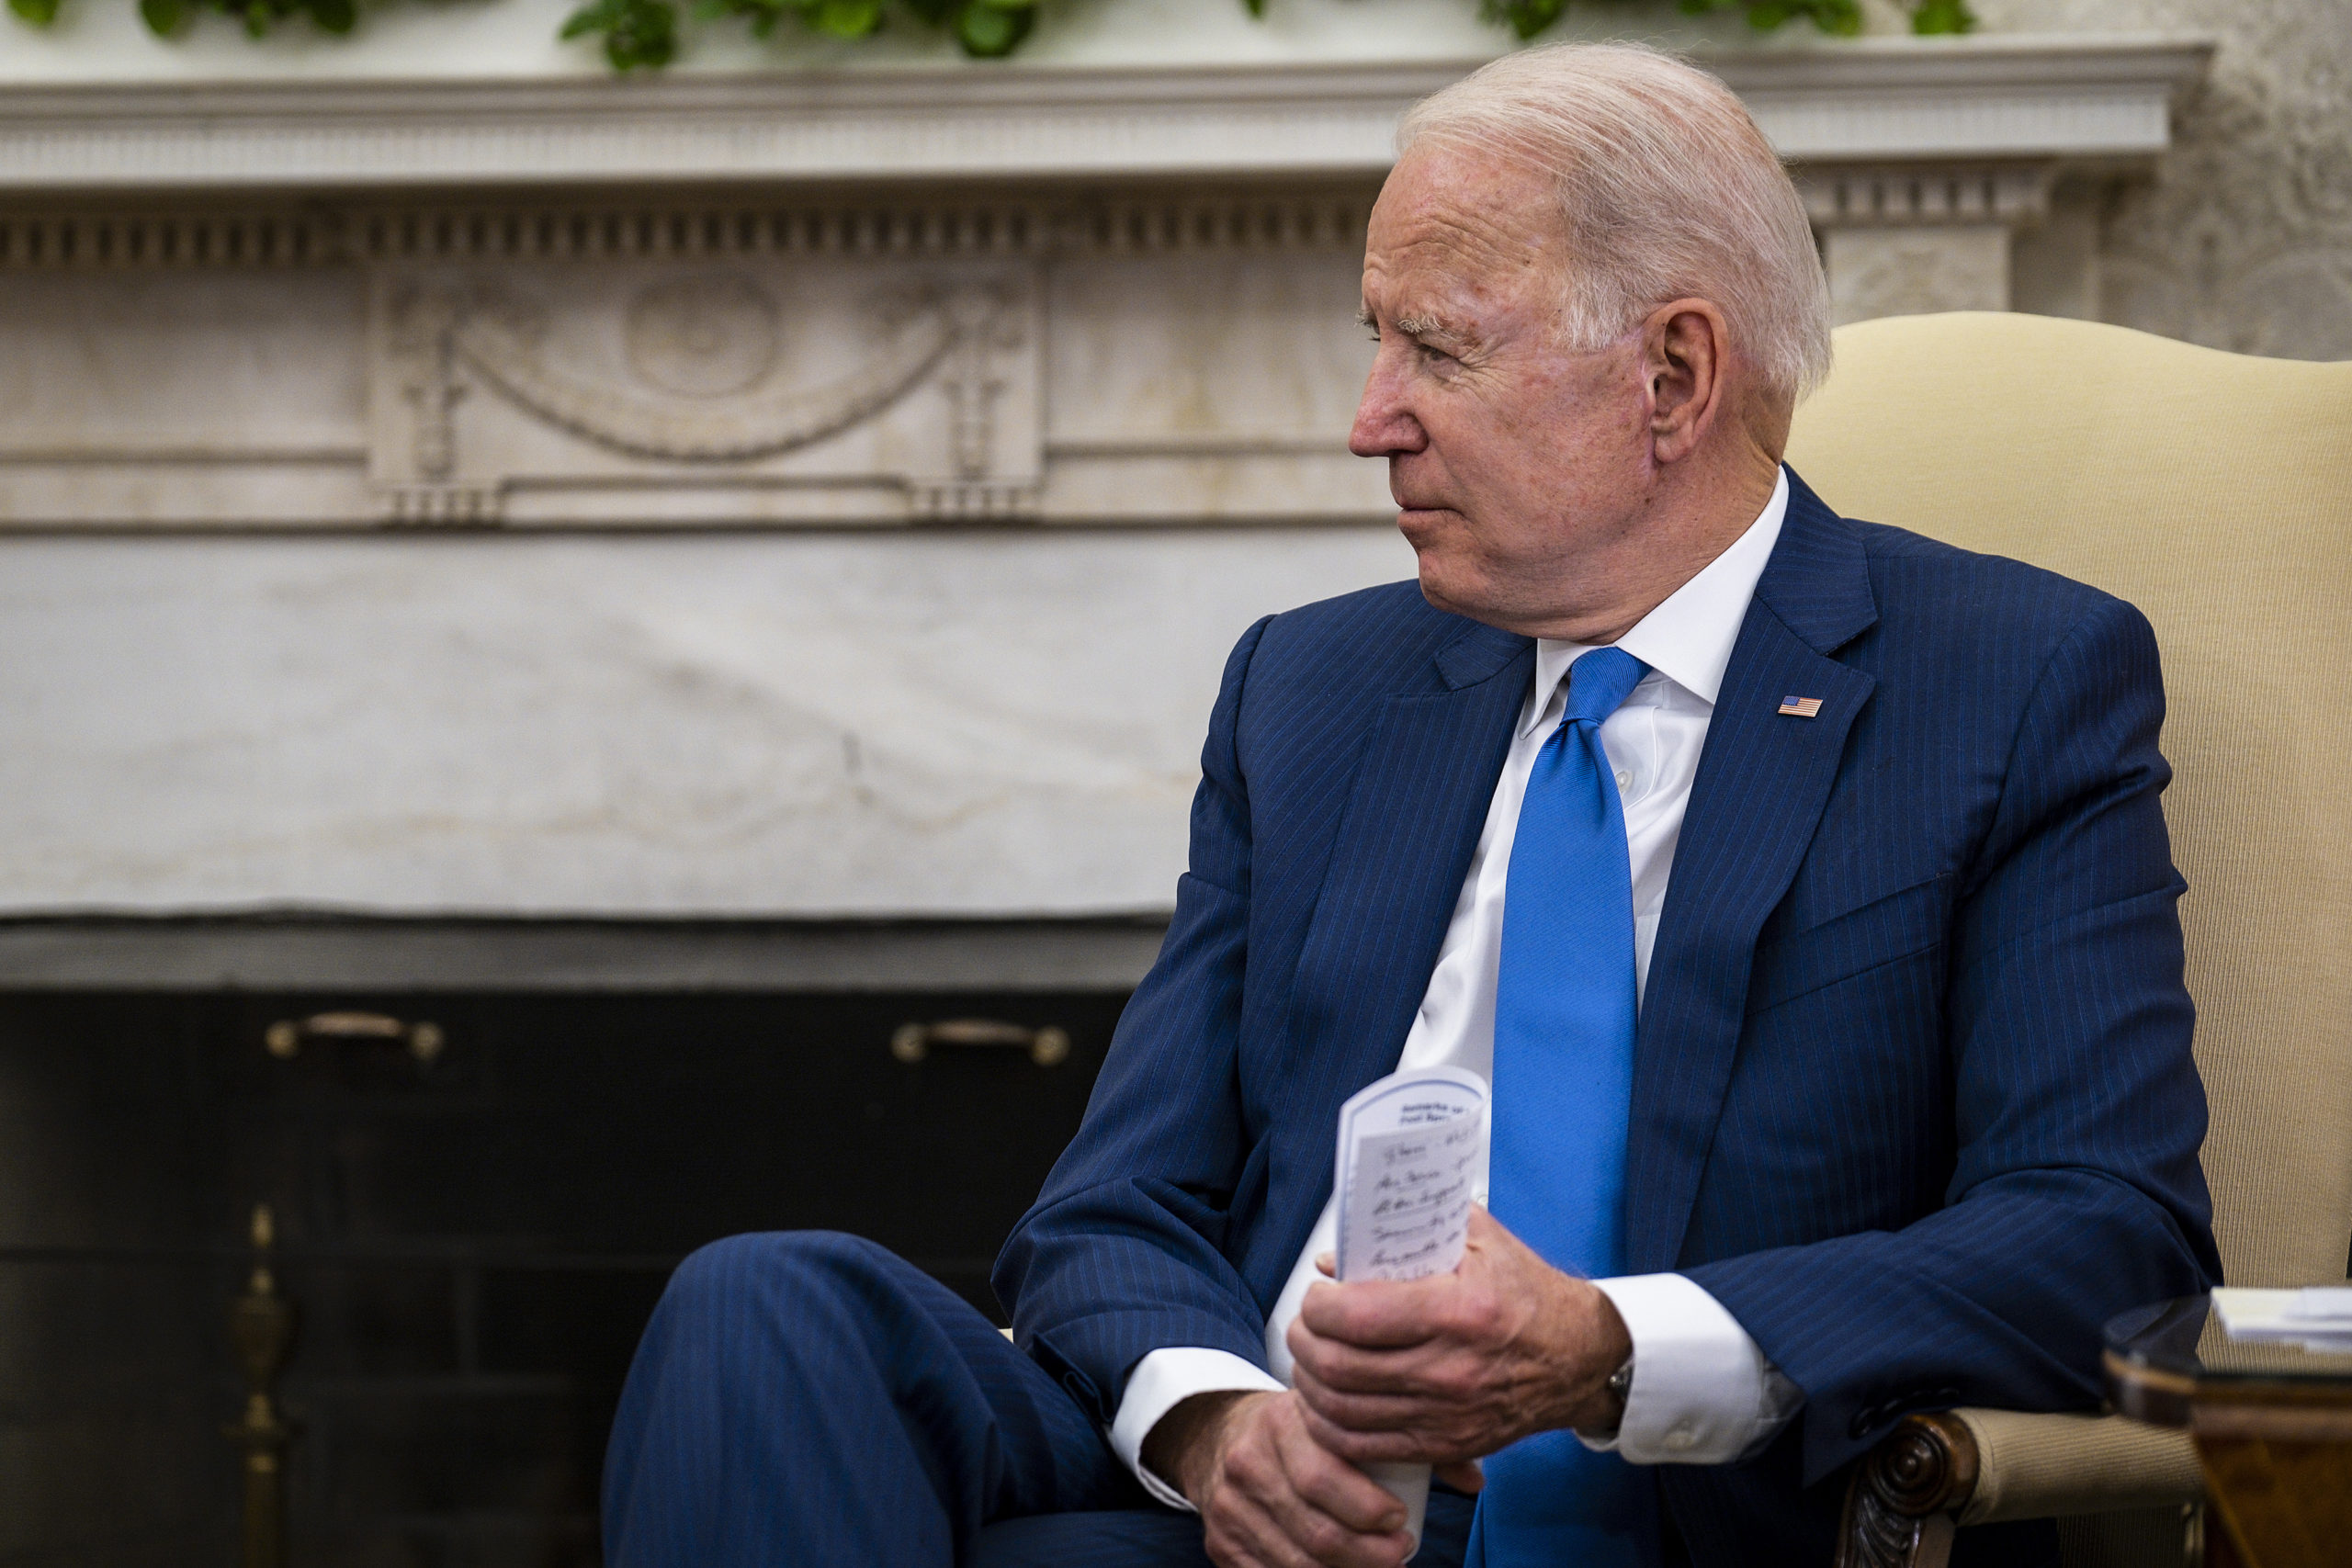 U.S. President Joe Biden makes brief remarks while hosting Afghanistan President Ashraf Ghani and Dr. Abdullah Abdullah, Chairman of the High Council for National Reconciliation, in the Oval Office at the White House June 25, 2021 in Washington, DC. (Pete Marovich-Pool/Getty Images)